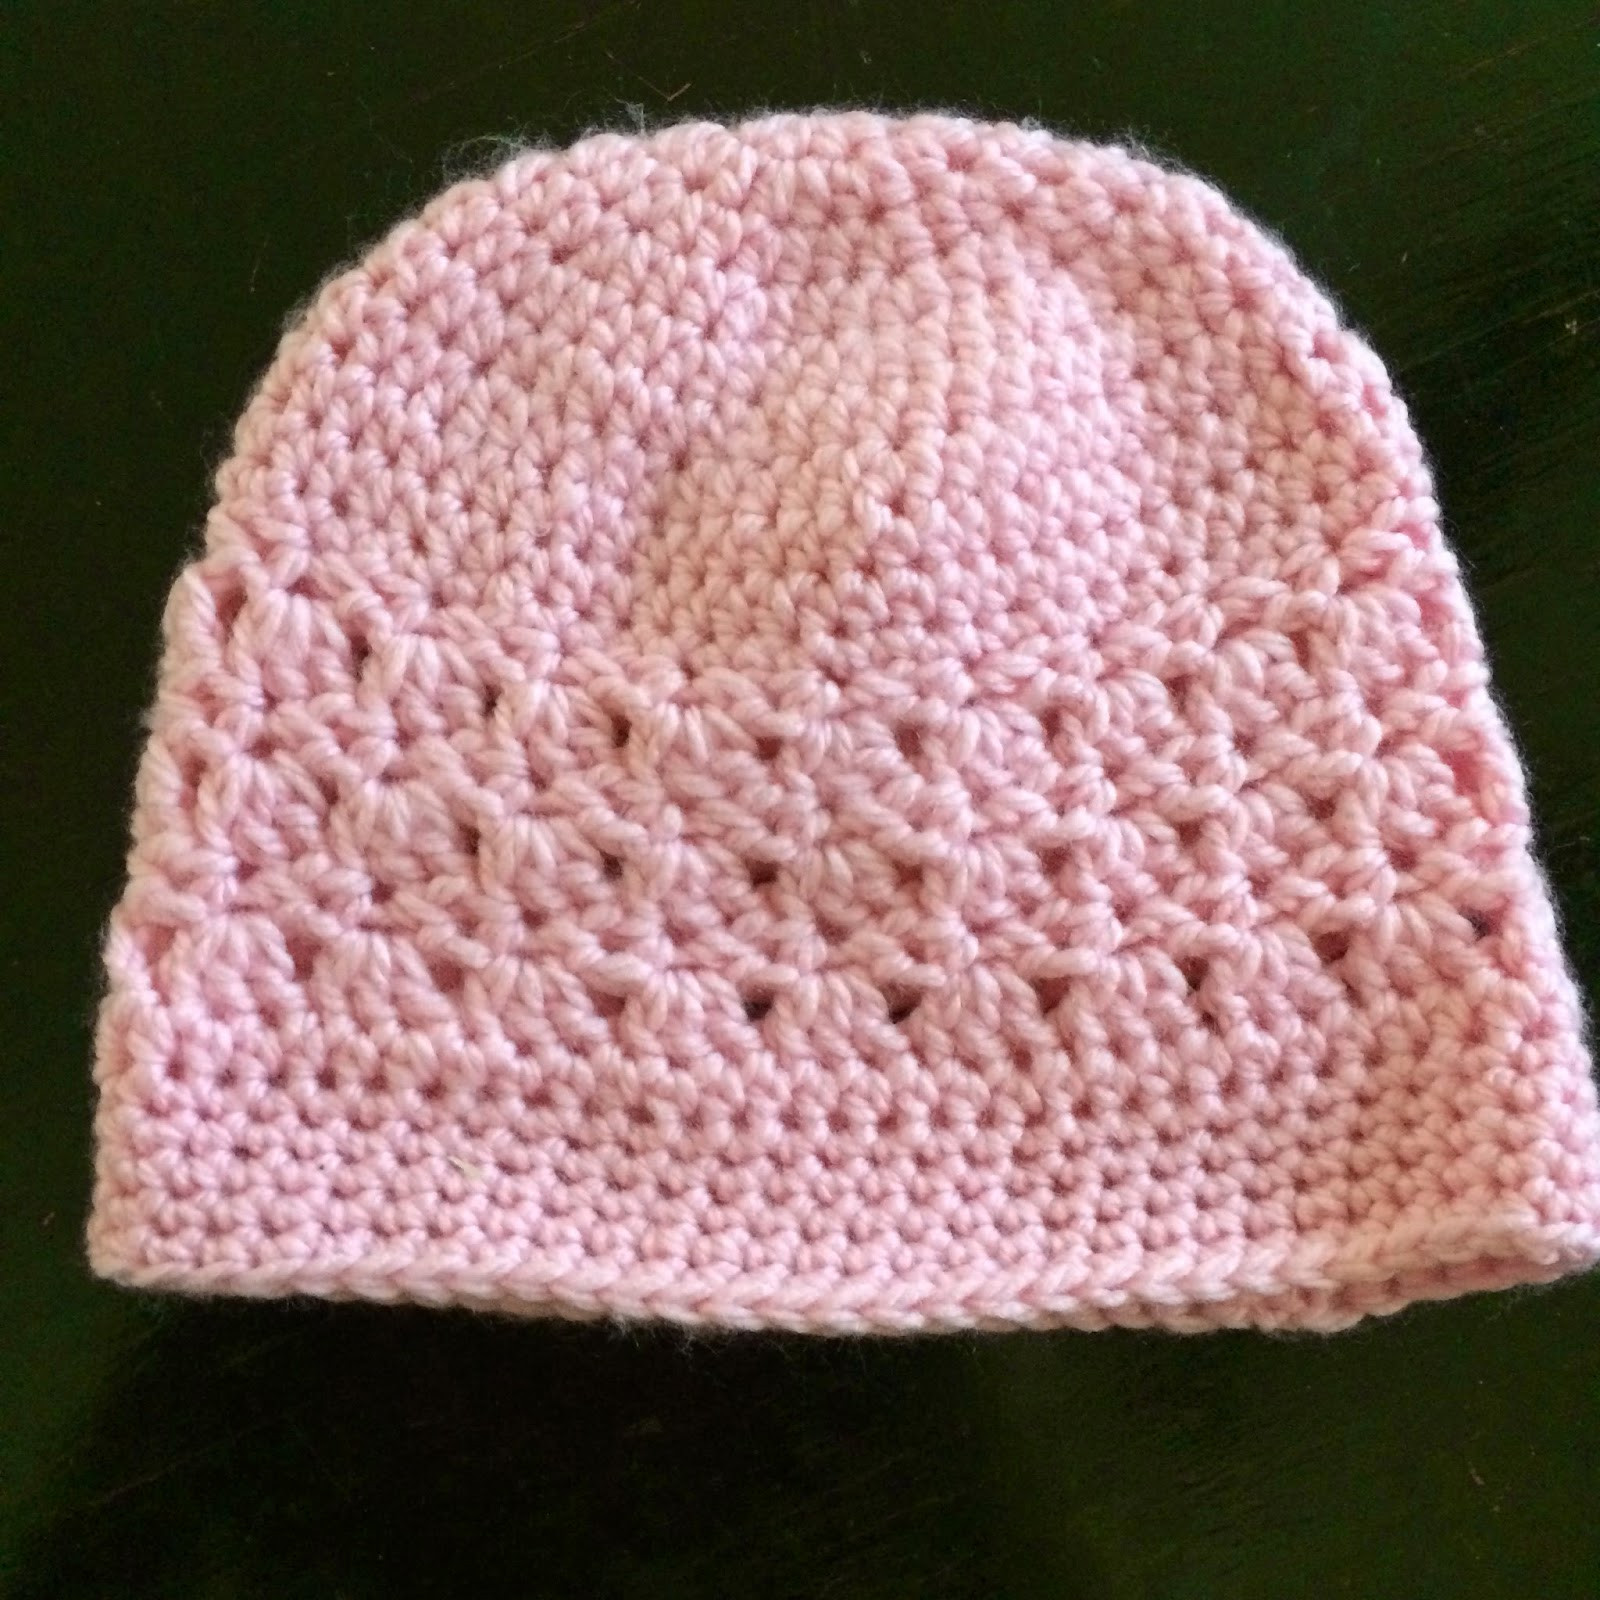 Chemo Cap Crochet Pattern Elegant Crochet Chemo Cap Free Pattern Of Brilliant 48 Pictures Chemo Cap Crochet Pattern